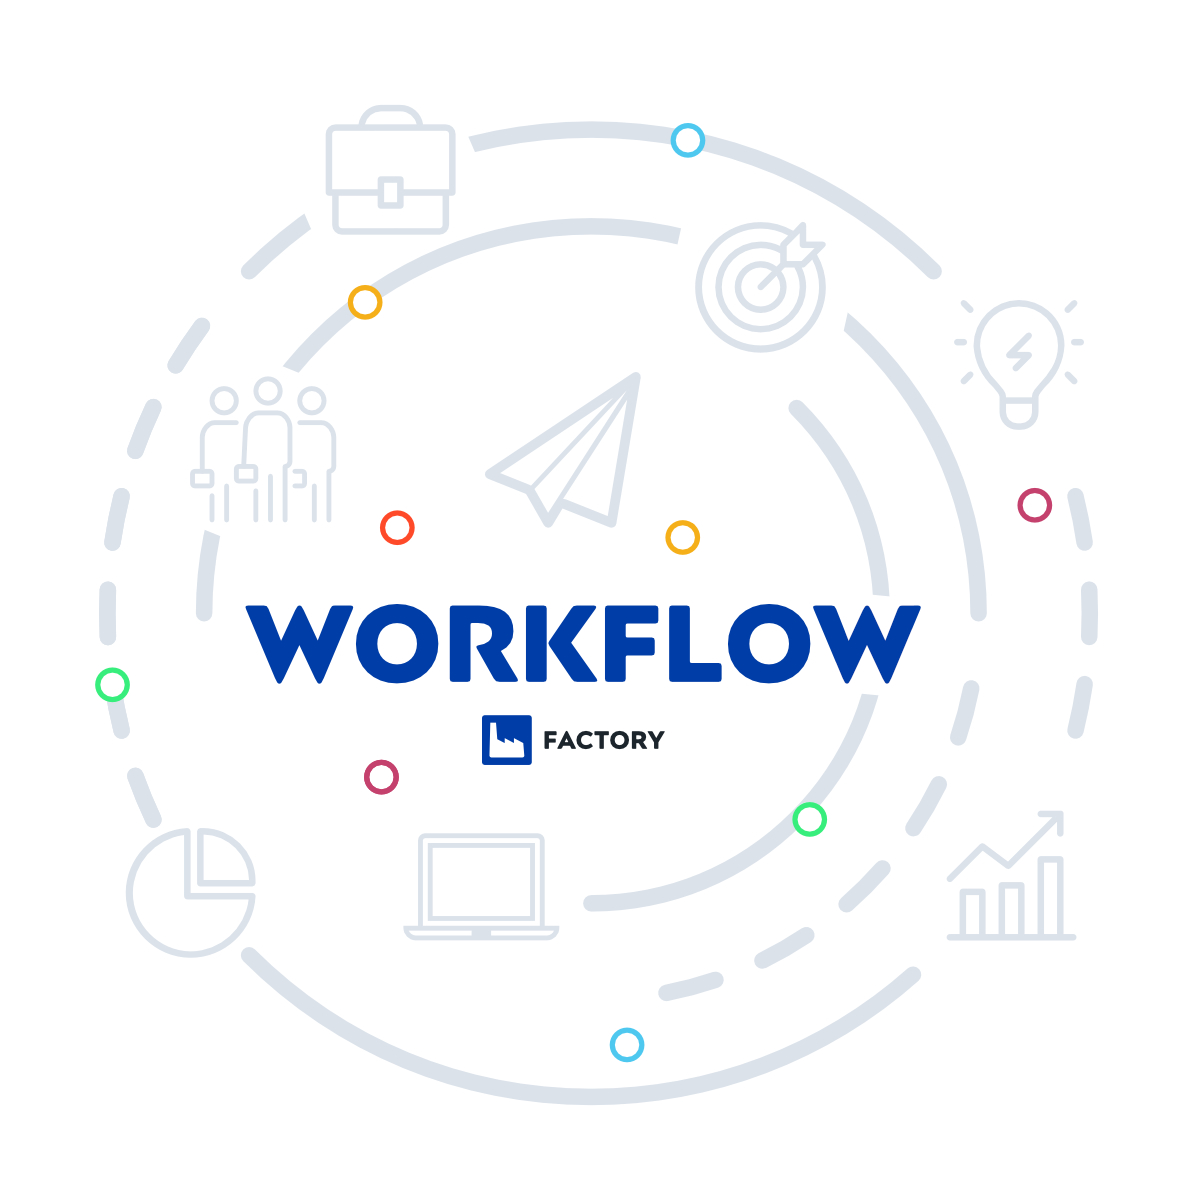 Pimcore Workflow management